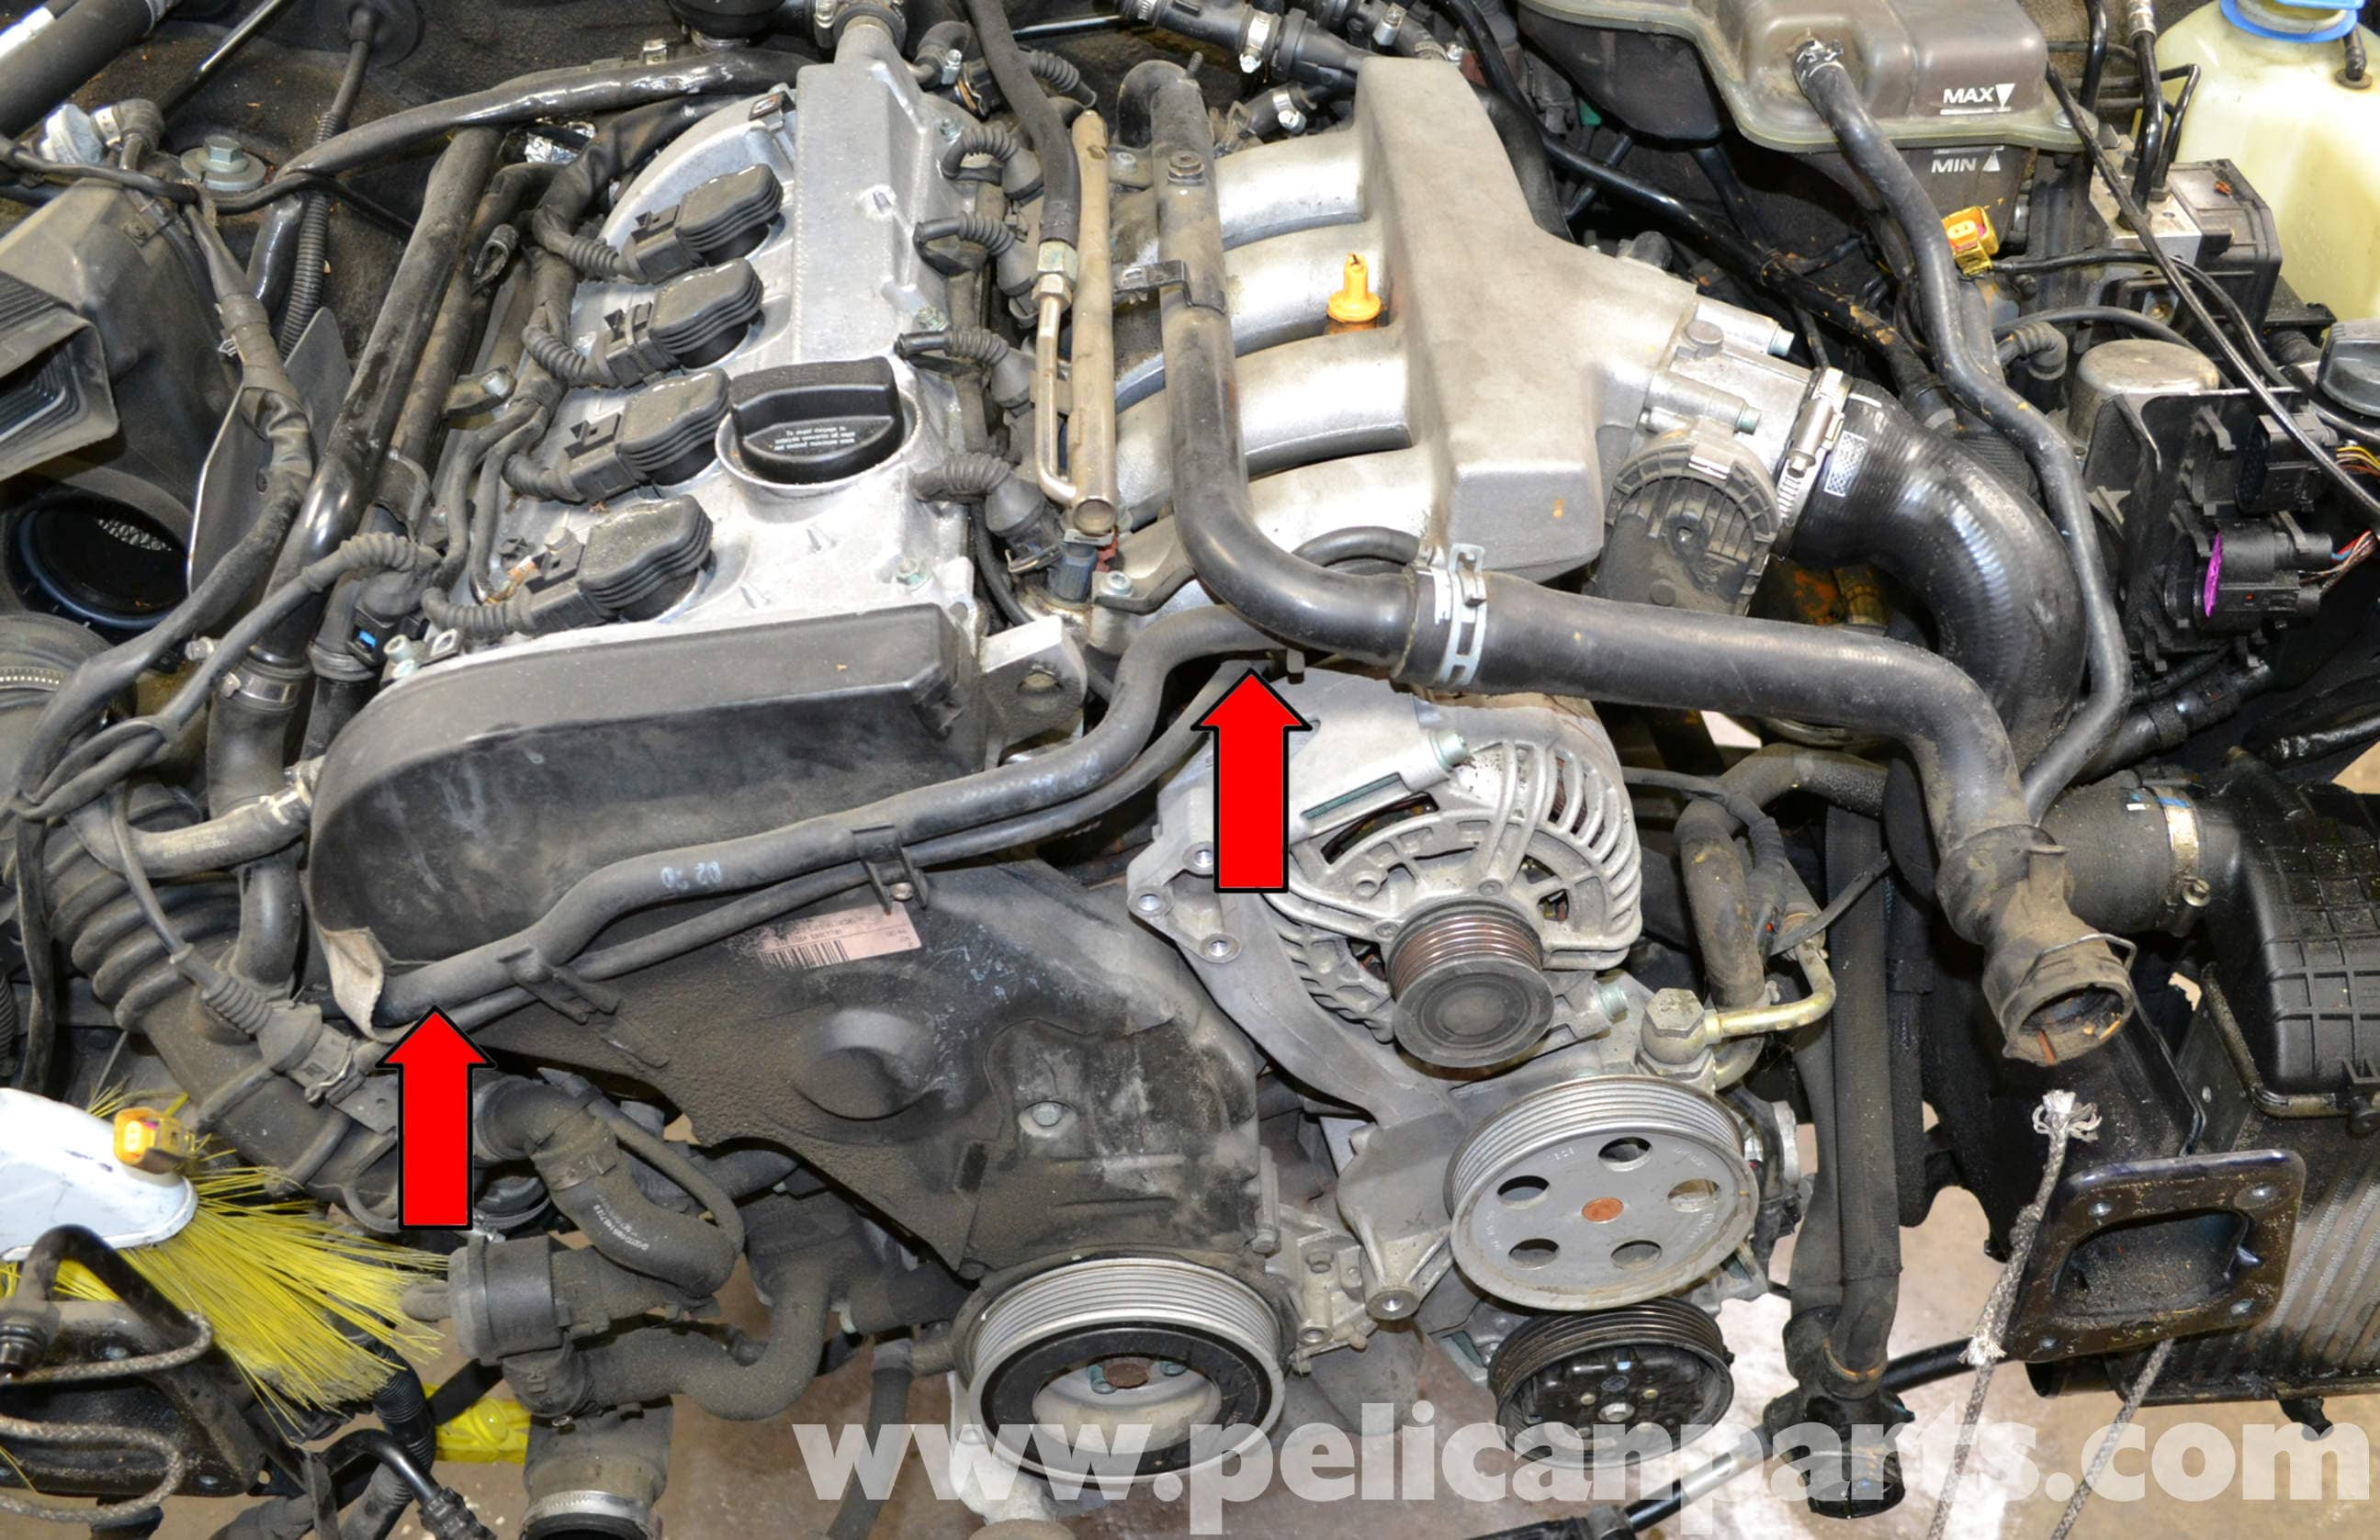 Audi A4 B6 Radiator Hoses Replacement 1 8t 2002 2008 border=